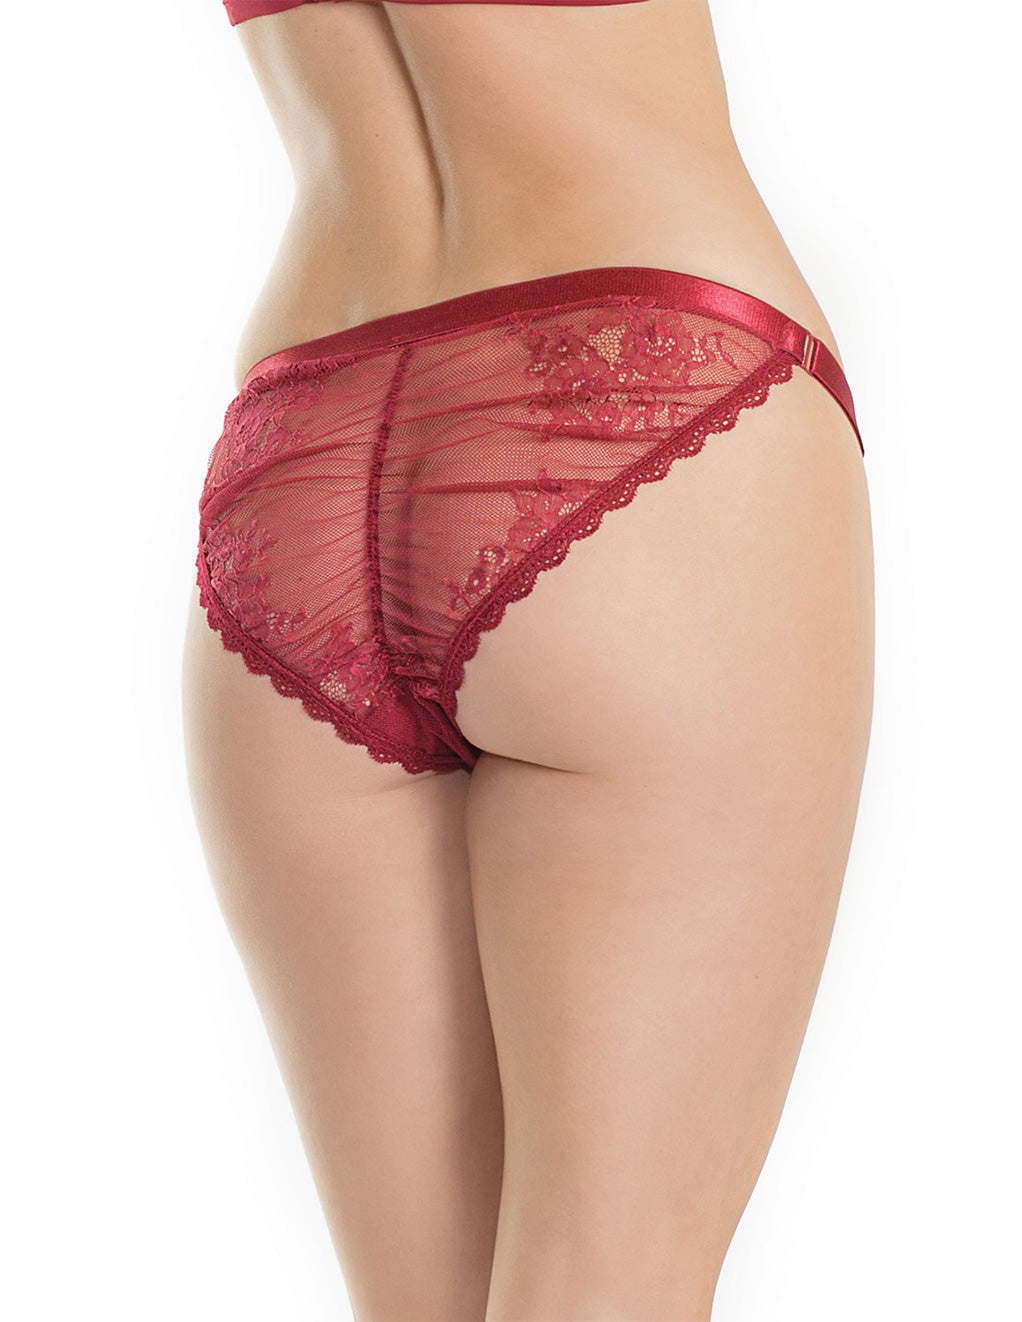 Low-Rise Mesh Satin Trim Panty- Back